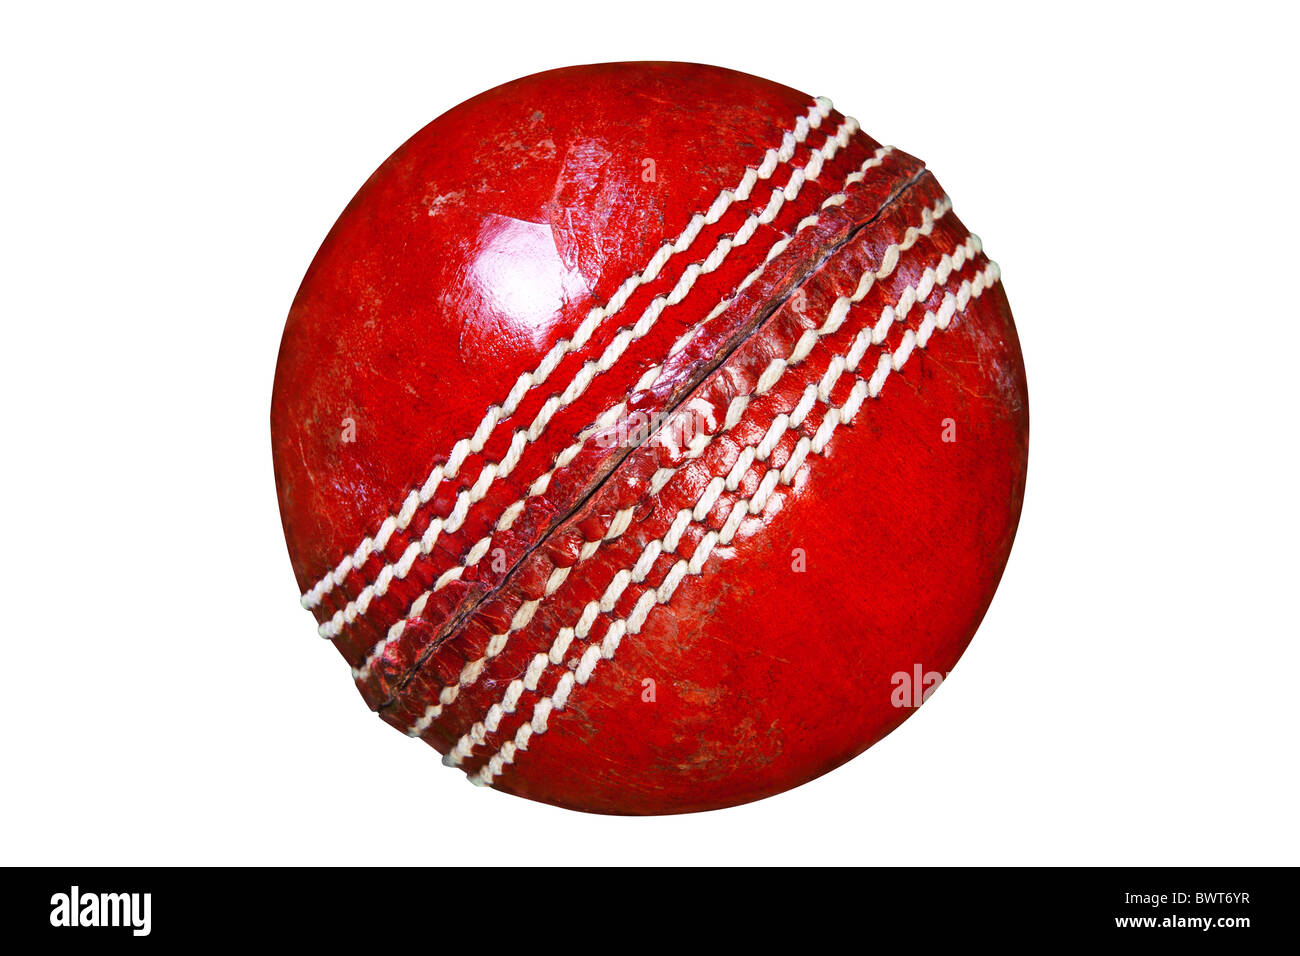 Photo of a red leather cricket ball isolated on white background with clipping path done using pen tool. Stock Photo